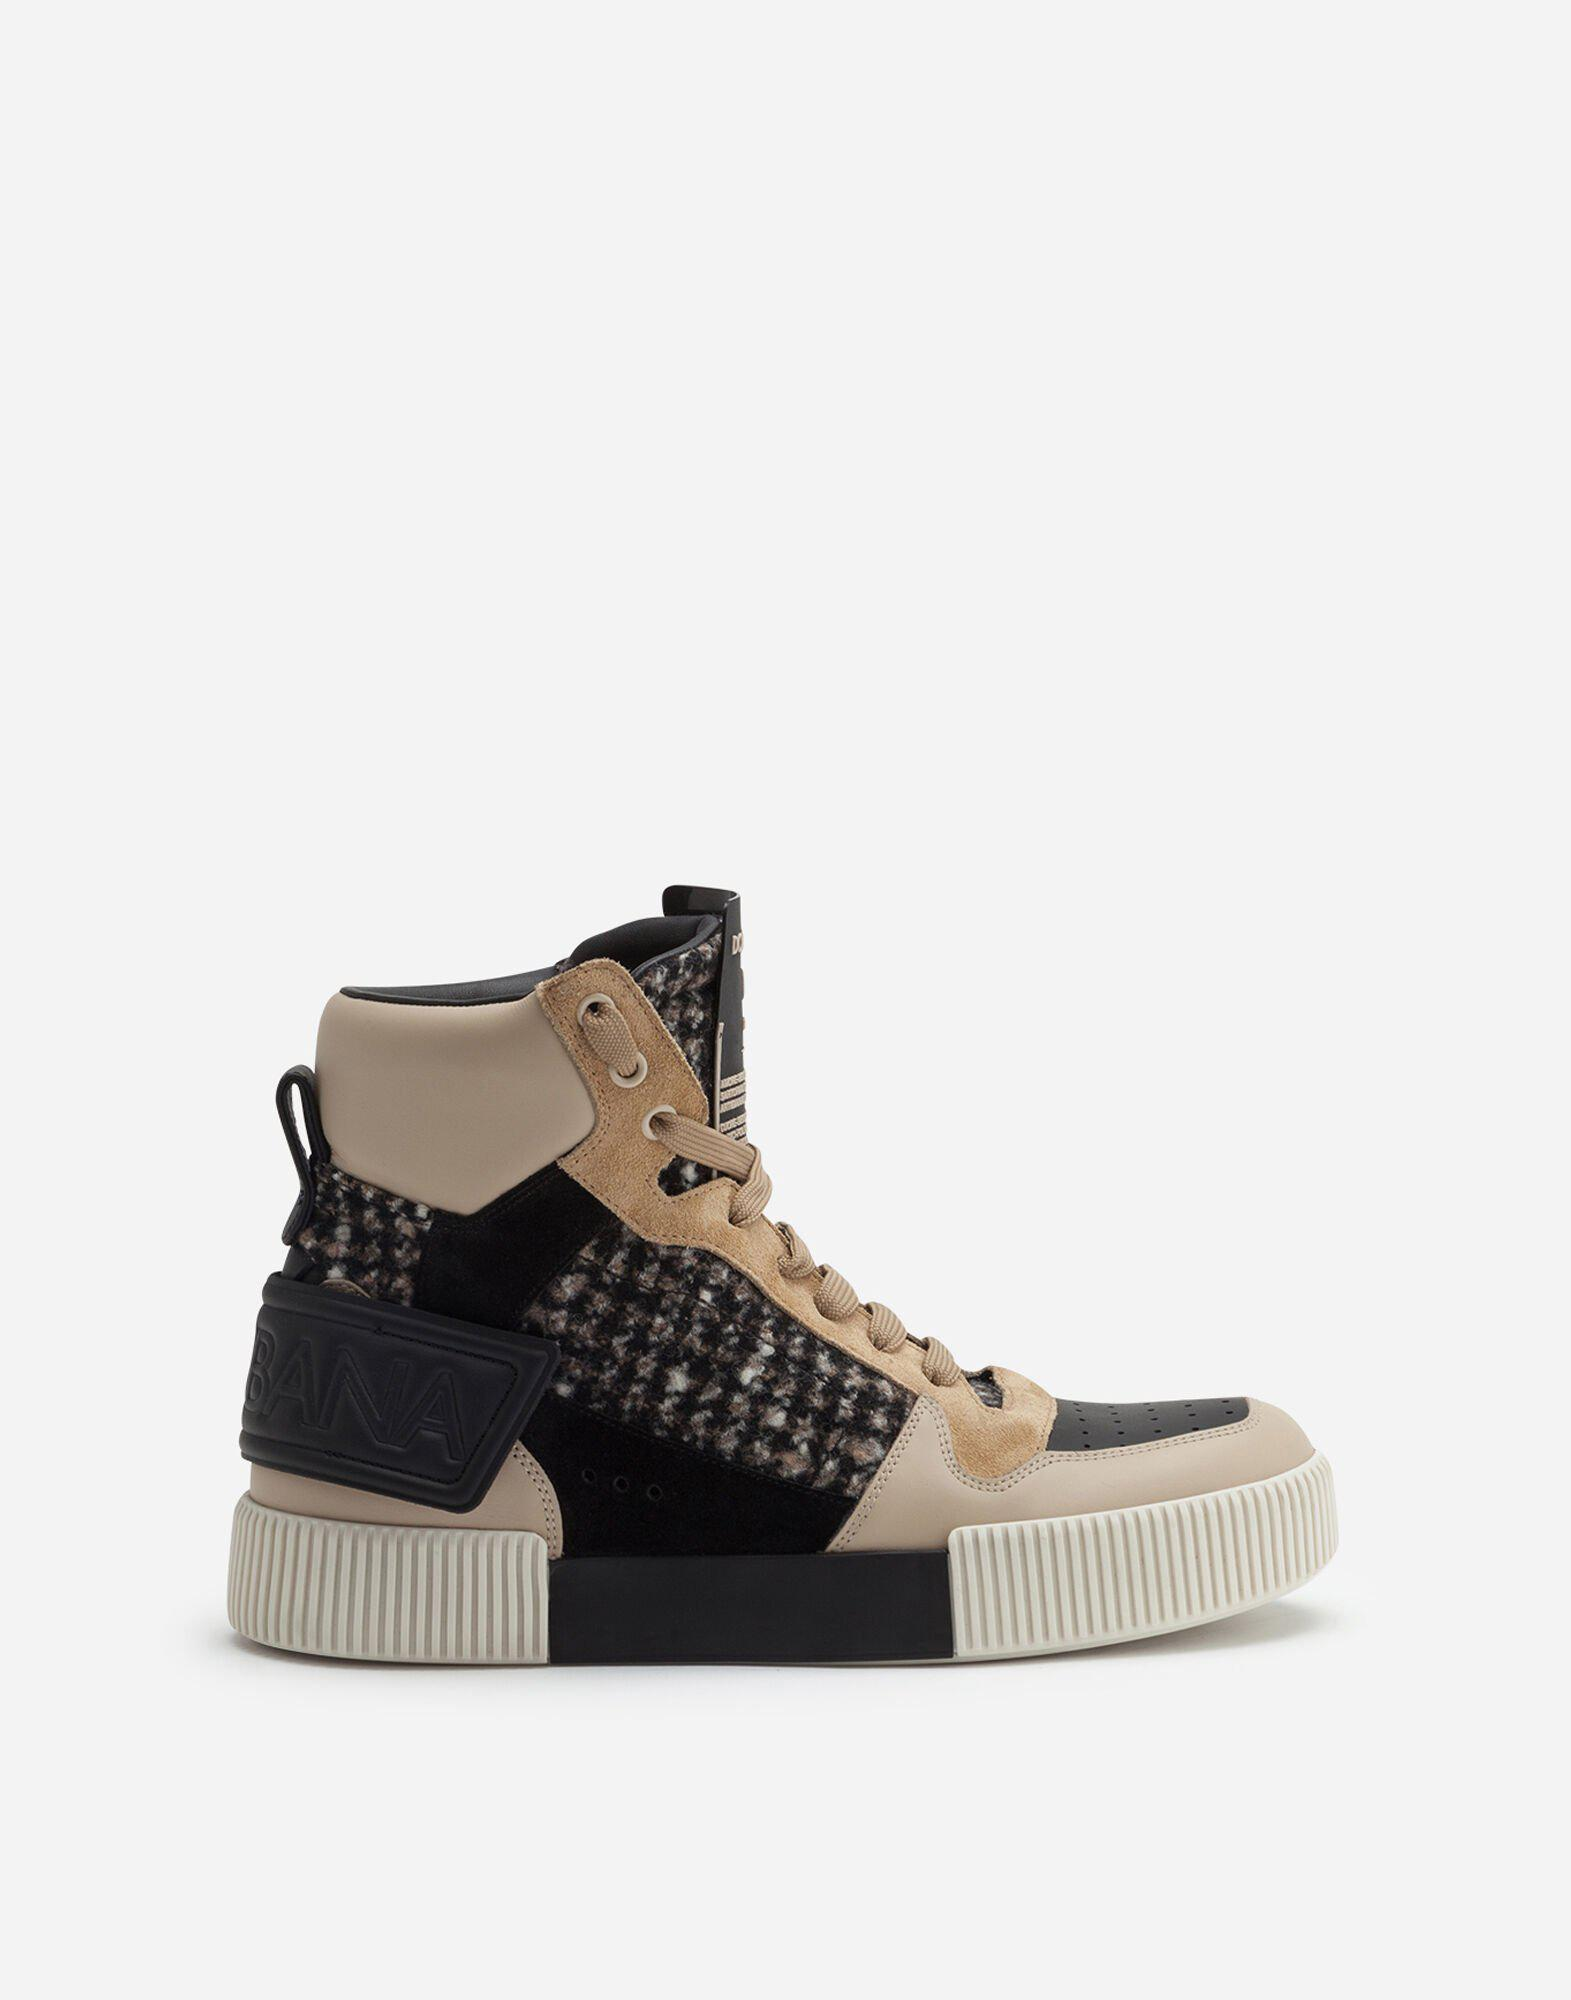 Miami high top sneakers in houndstooth and nappa leather 0